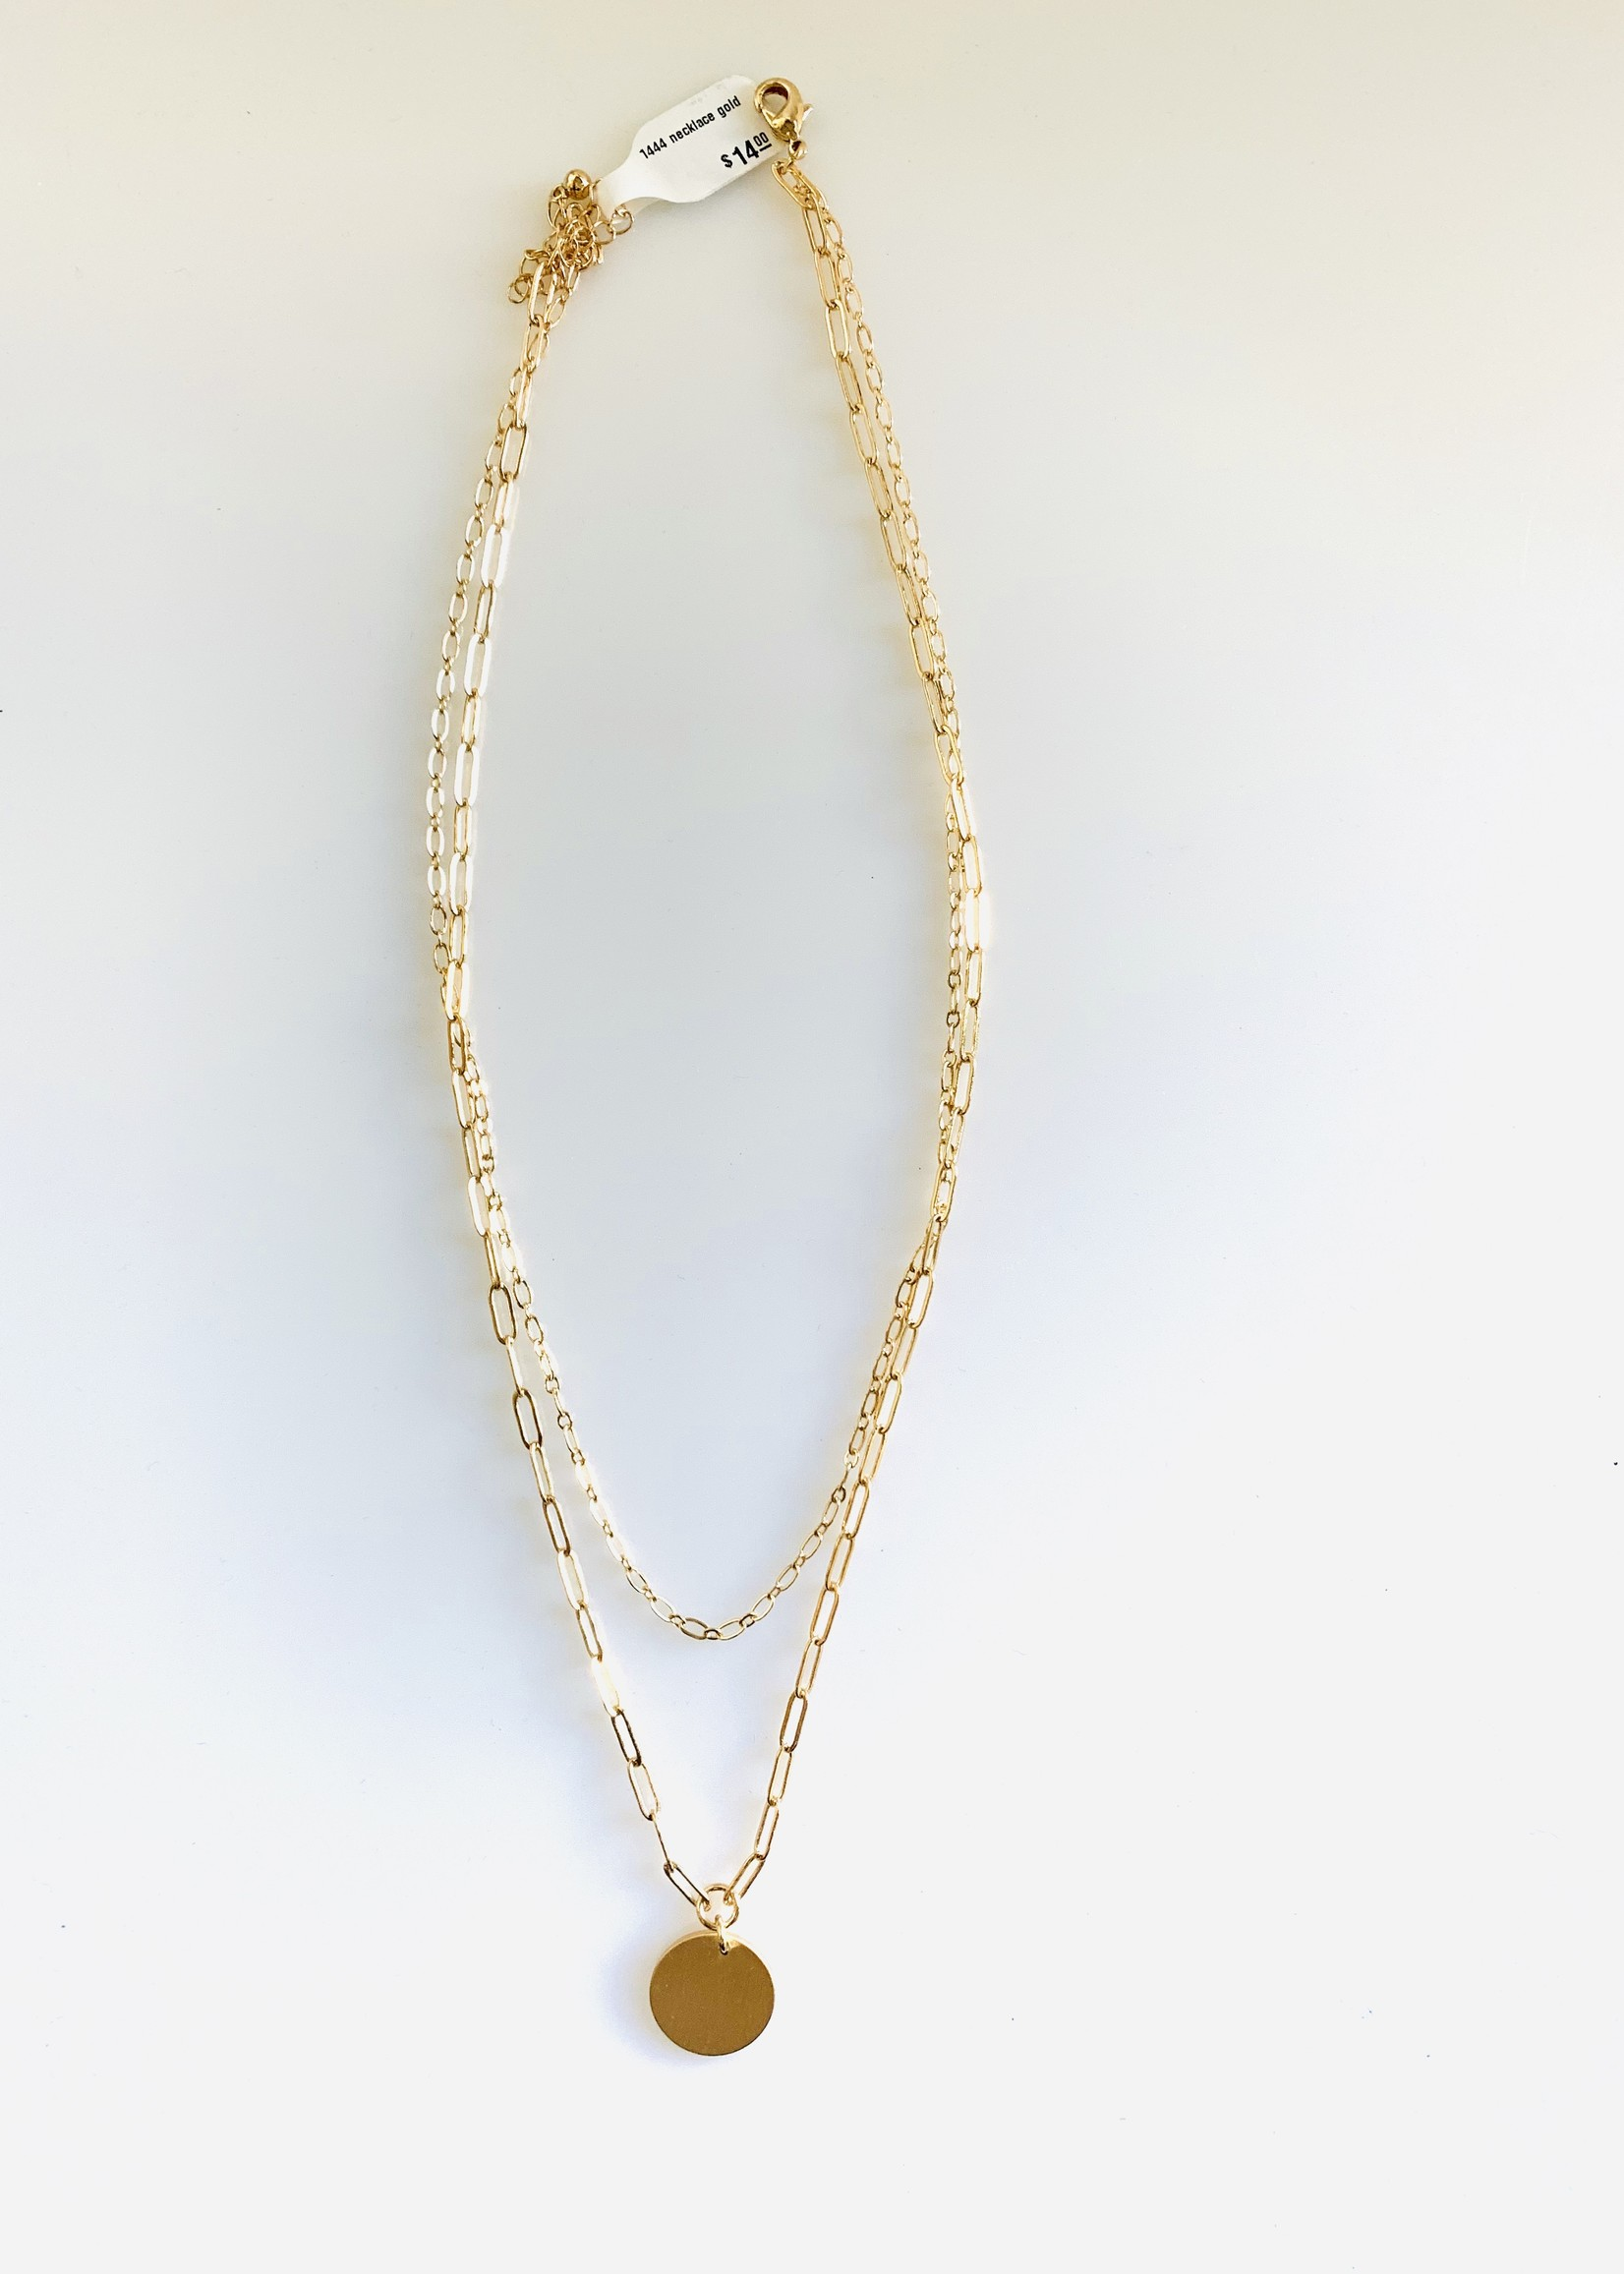 1444 necklace